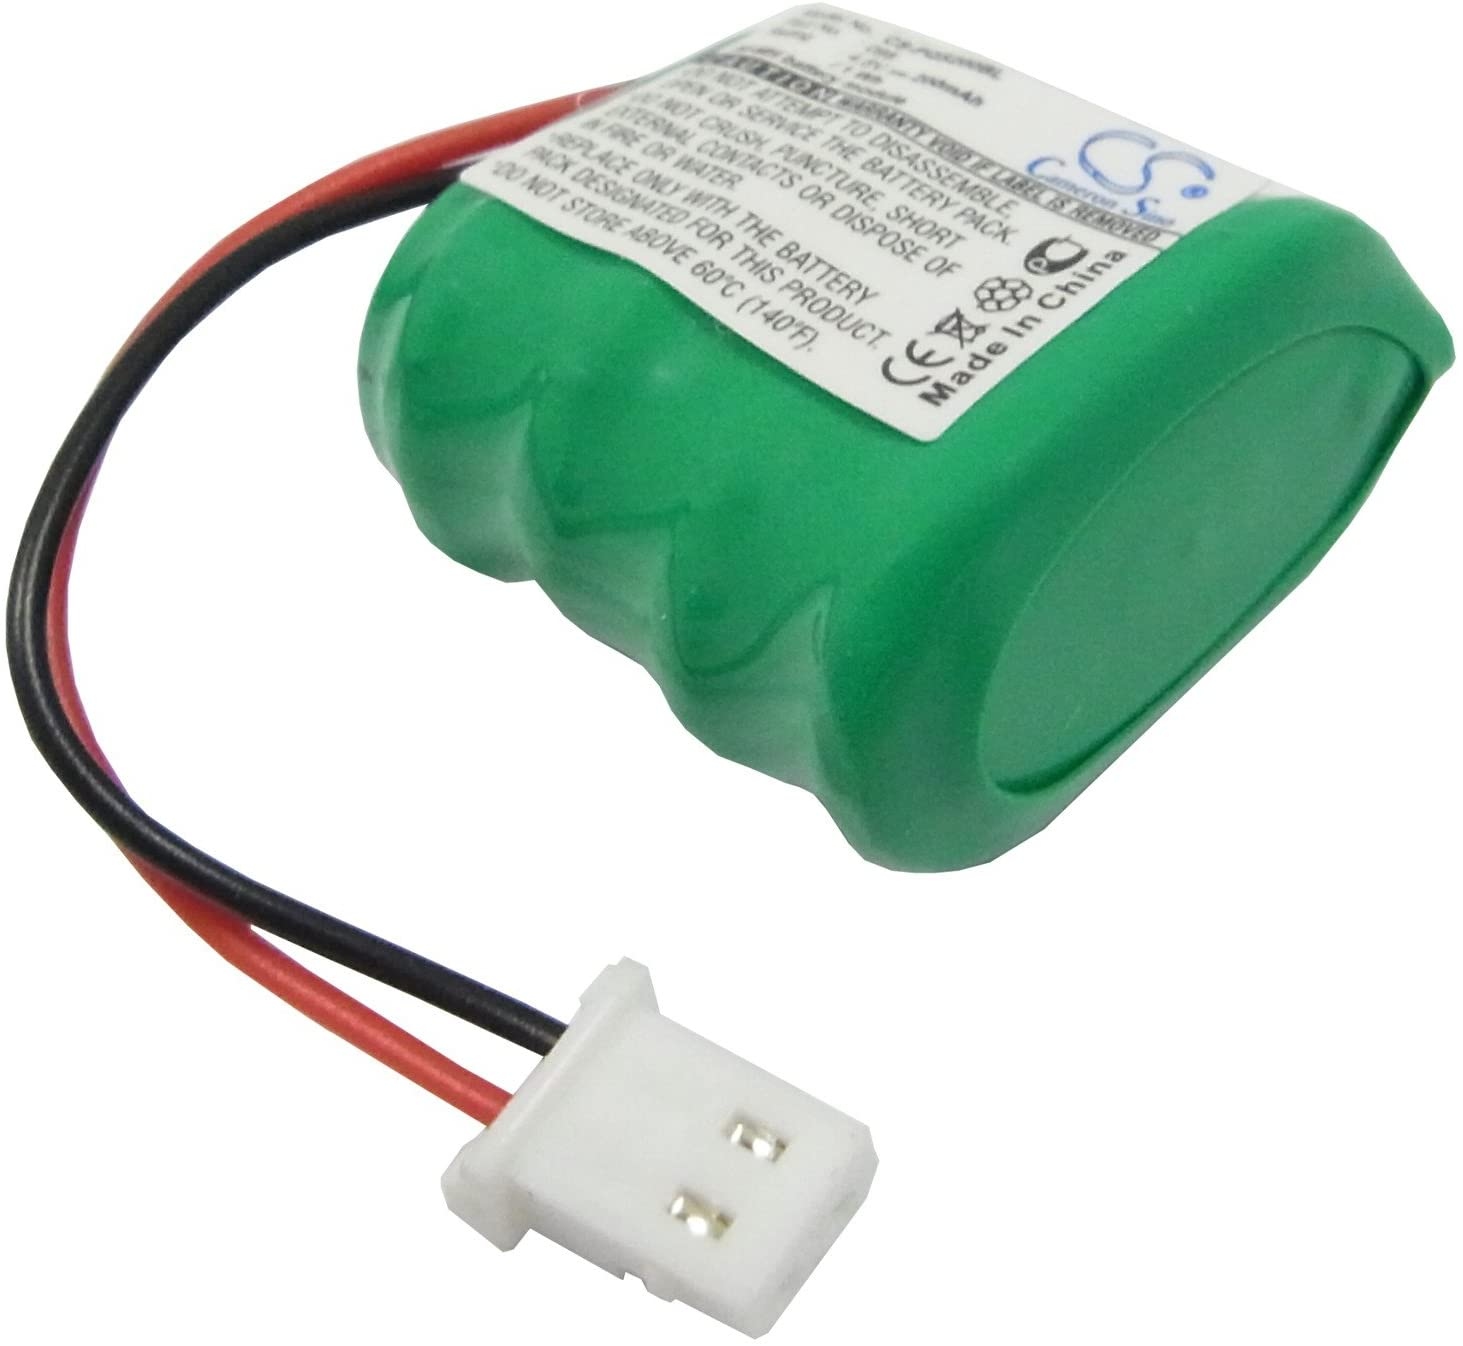 GAXI Battery for PSC Quick Check 150, Quick Check 200 Replacement for PSC Barcode Scanner Battery